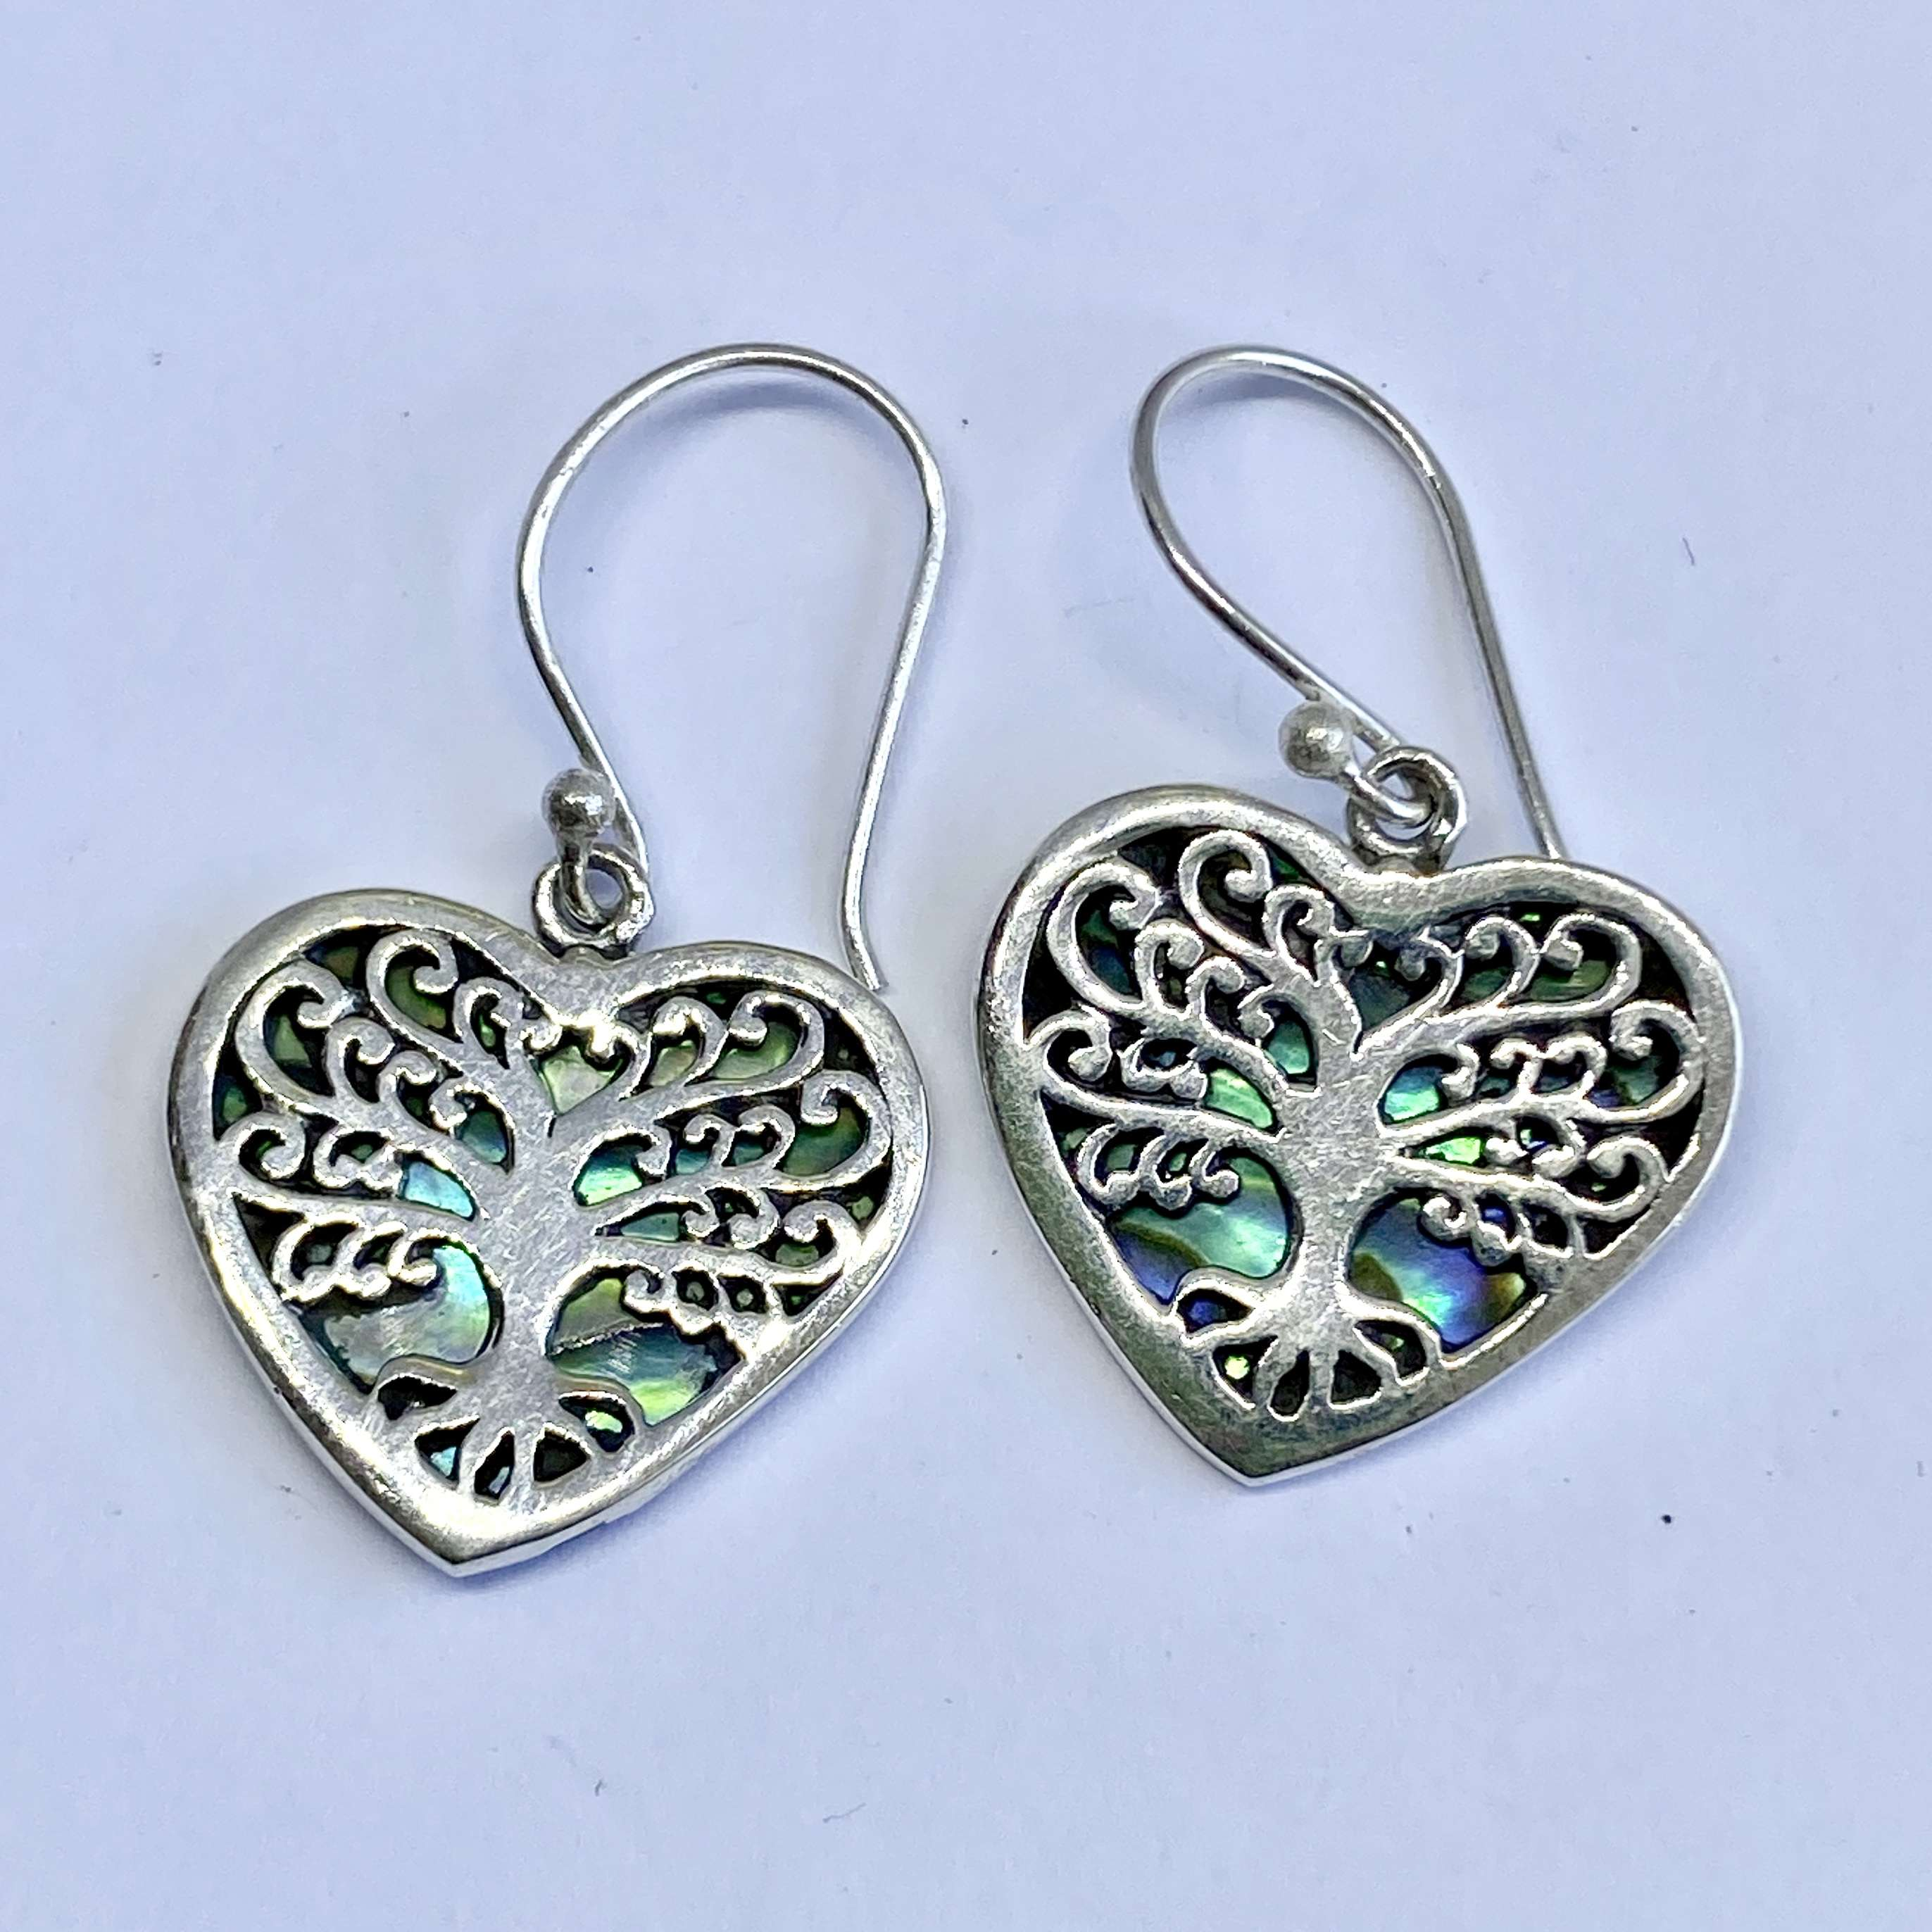 (BALI 925 STERLING SILVER TREE OF LIFE HEART EARRINGS WITH ABALONE)